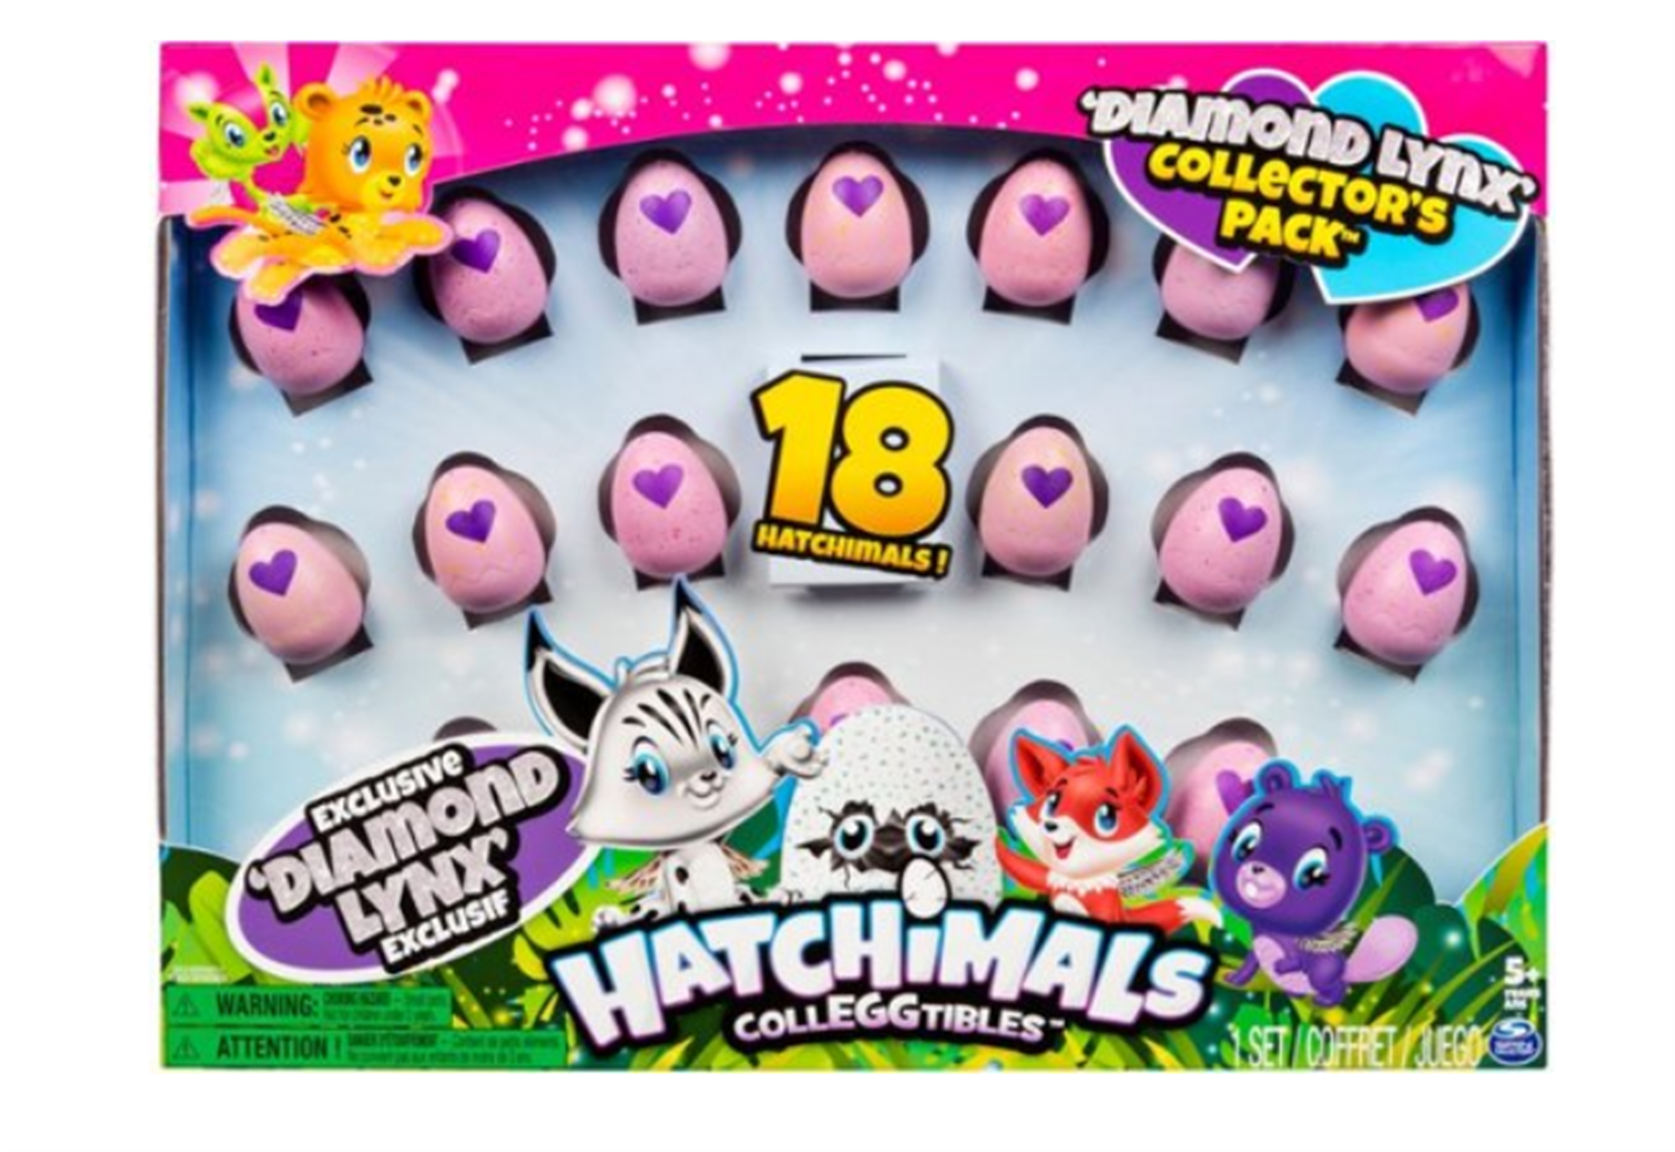 Best Buy – Hatchimals Colleggtibles Diamond Lynx Collector's 18-Pack Only $12.99, Regularly $30 + Free Store Pickup!